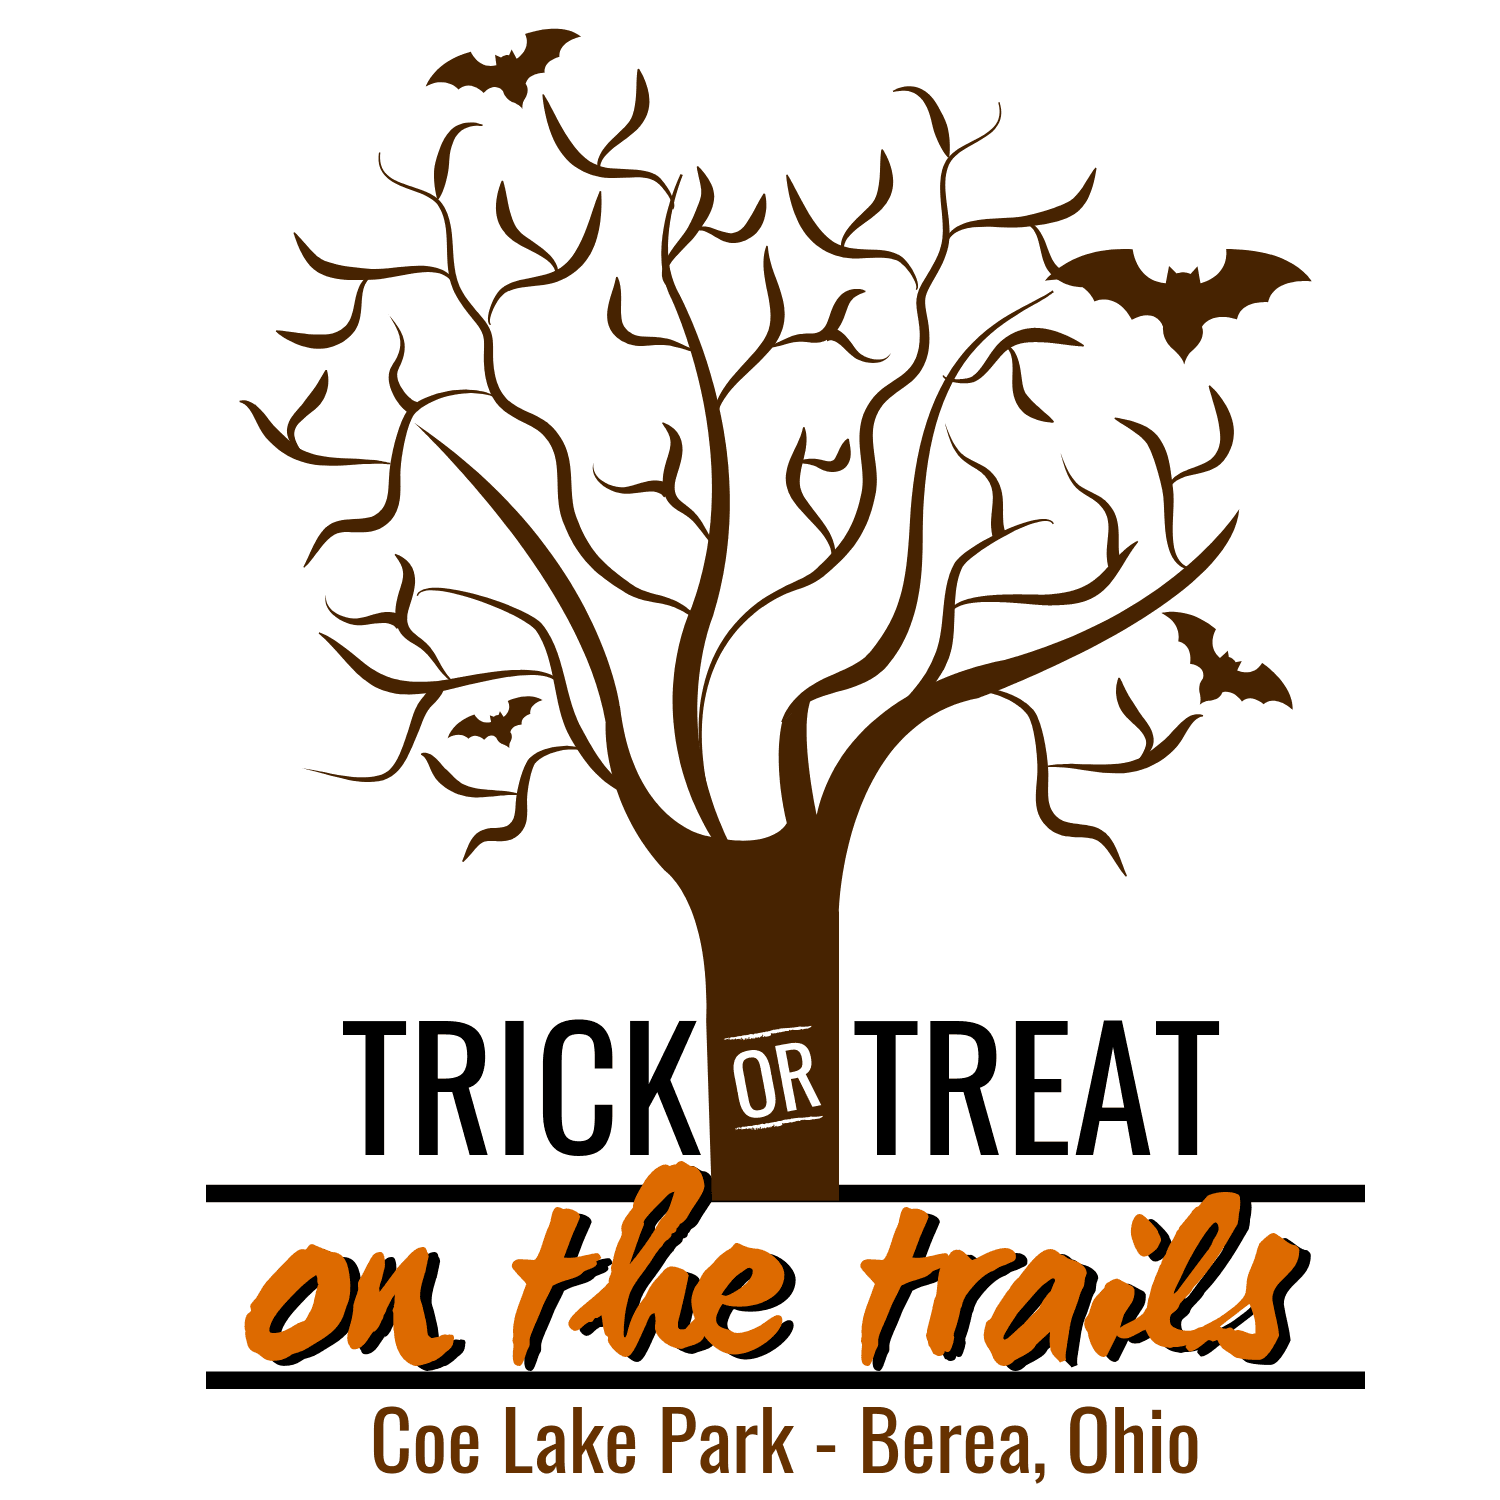 Trick or treat on the trails logo